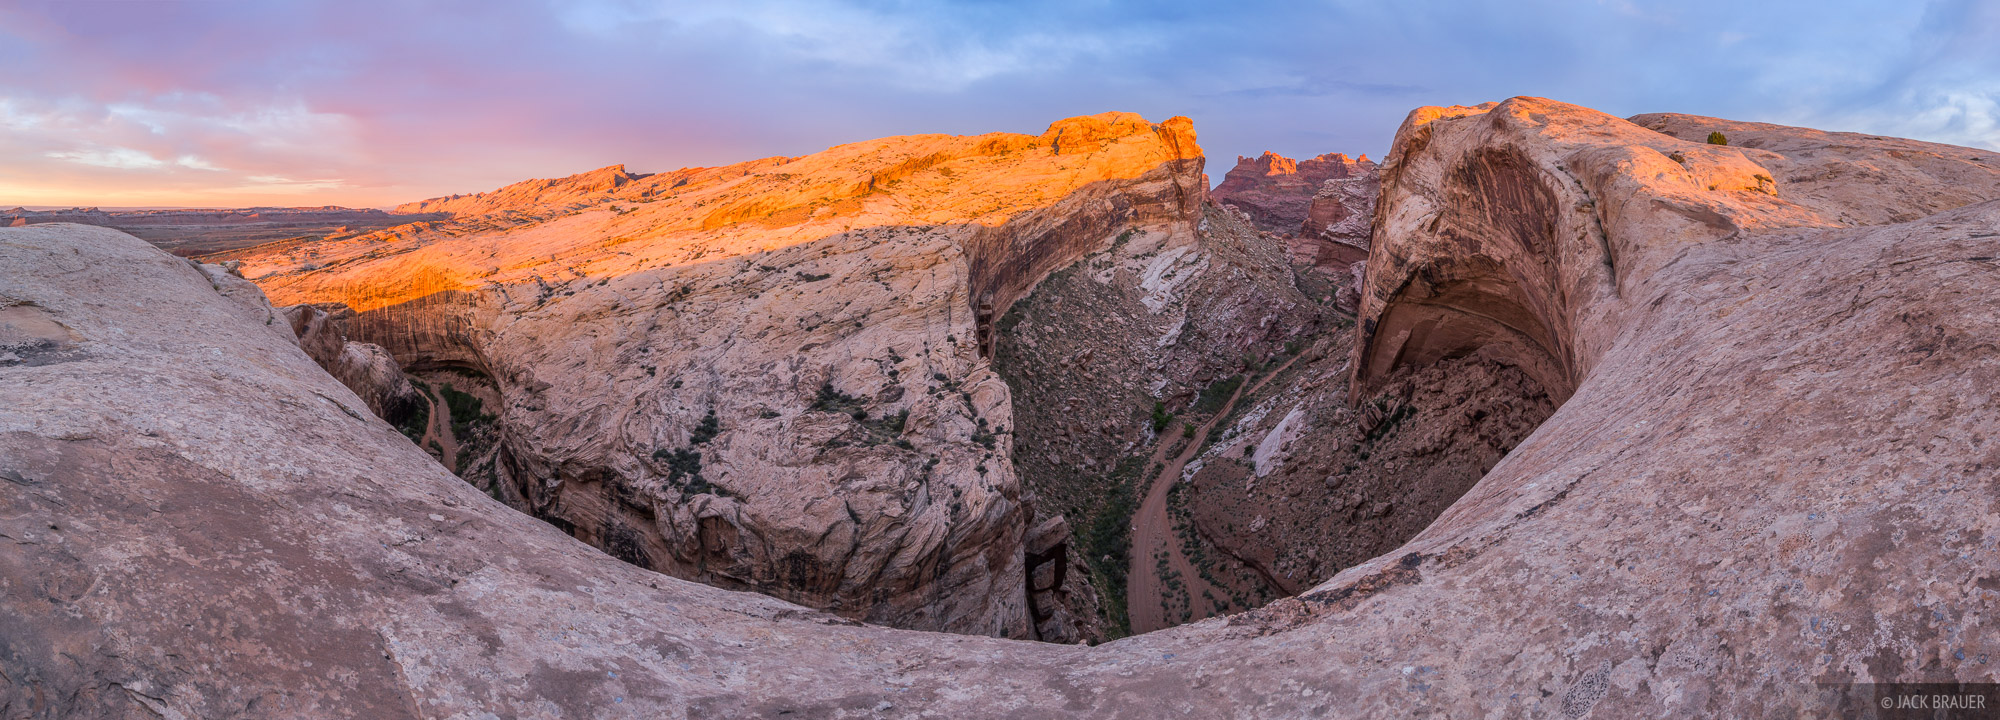 Black Dragon Canyon, San Rafael Swell, Utah, panorama, sunrise, photo